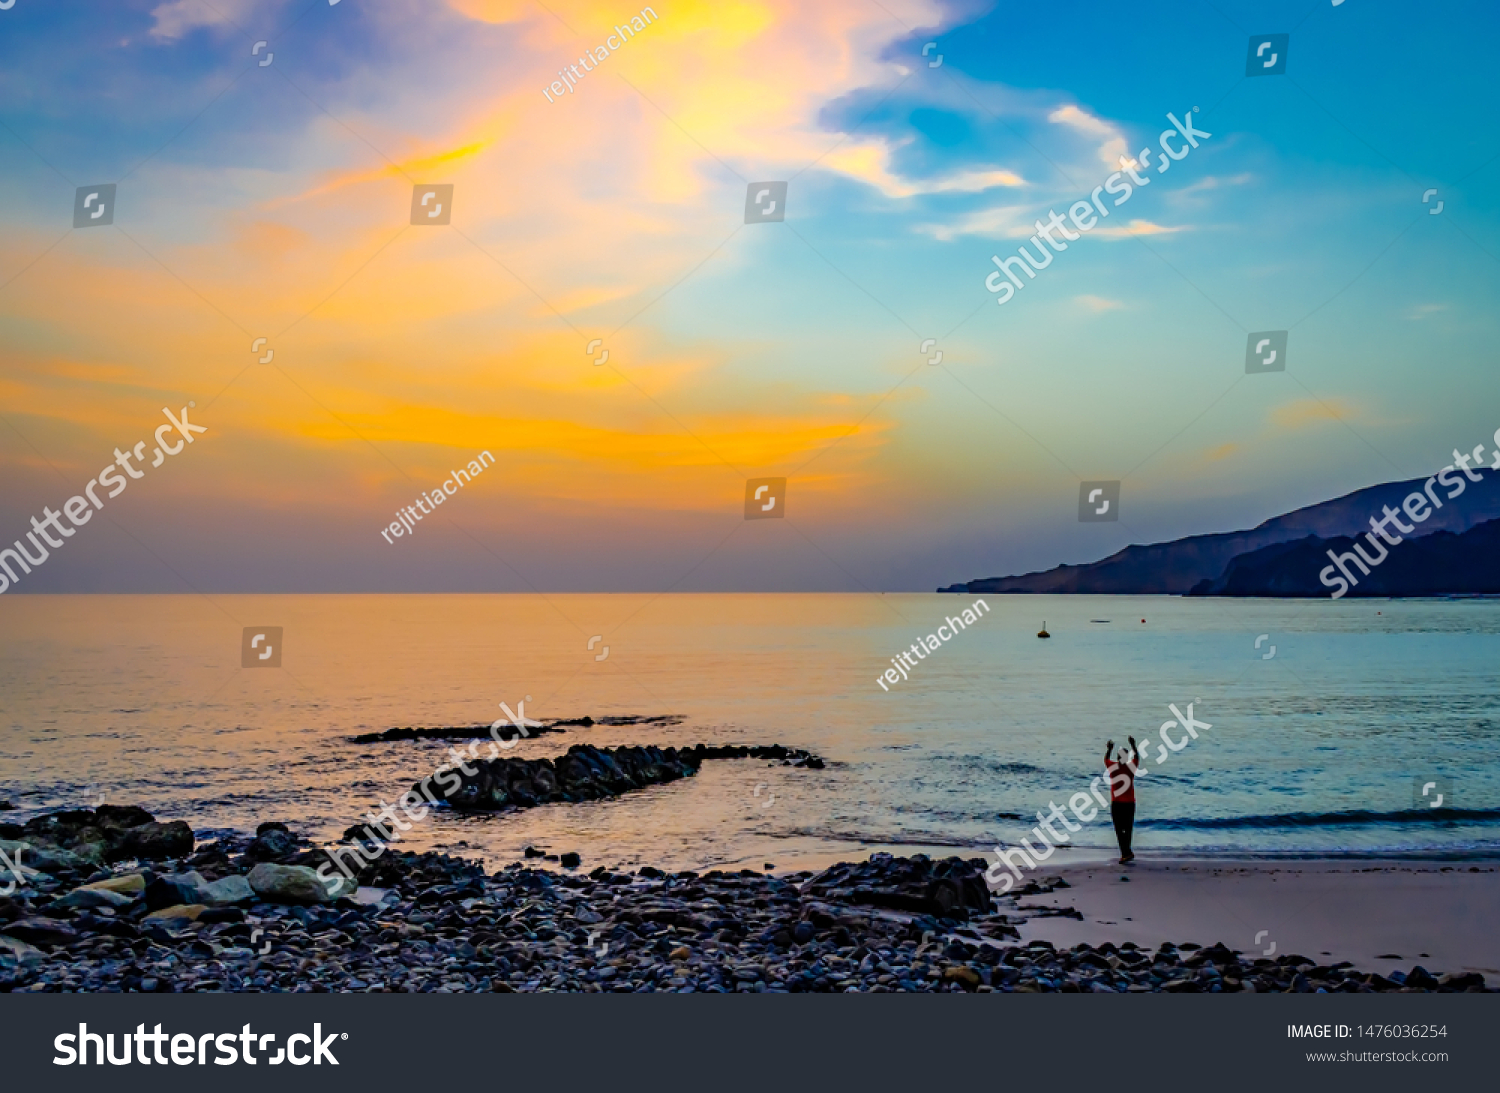 Man doing a yoga pose facing a beautiful sky in the morning on the beach. From Muscat, Oman.